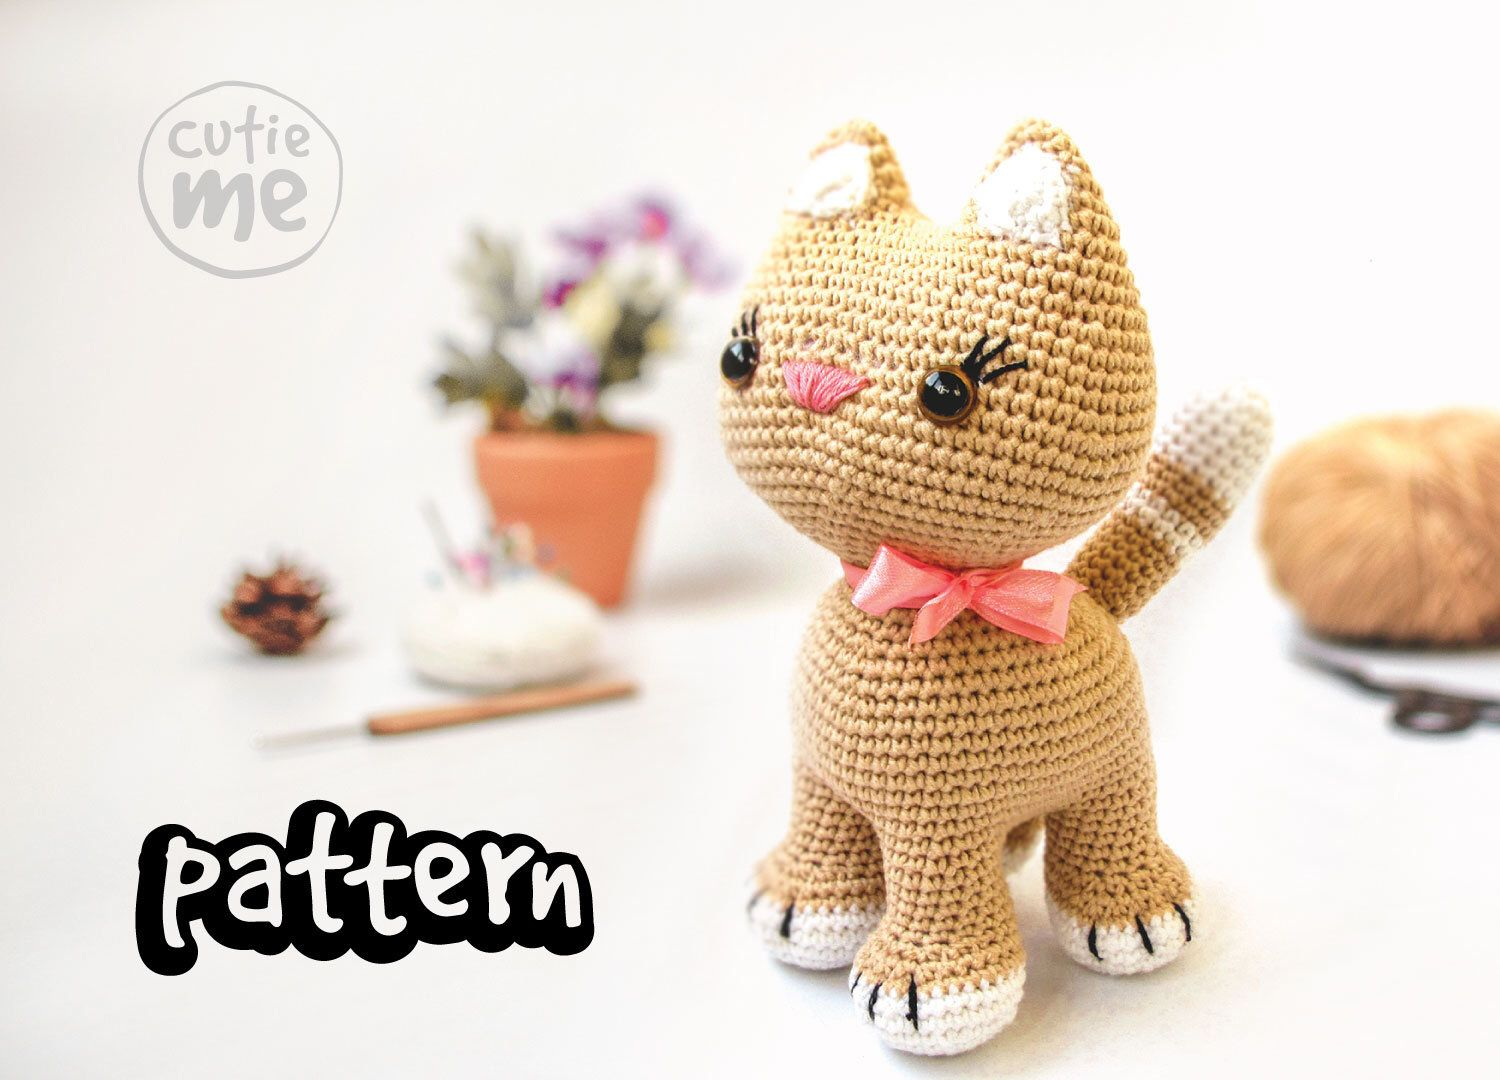 Free crochet cat pattern - Amigurumi Today | 1080x1500